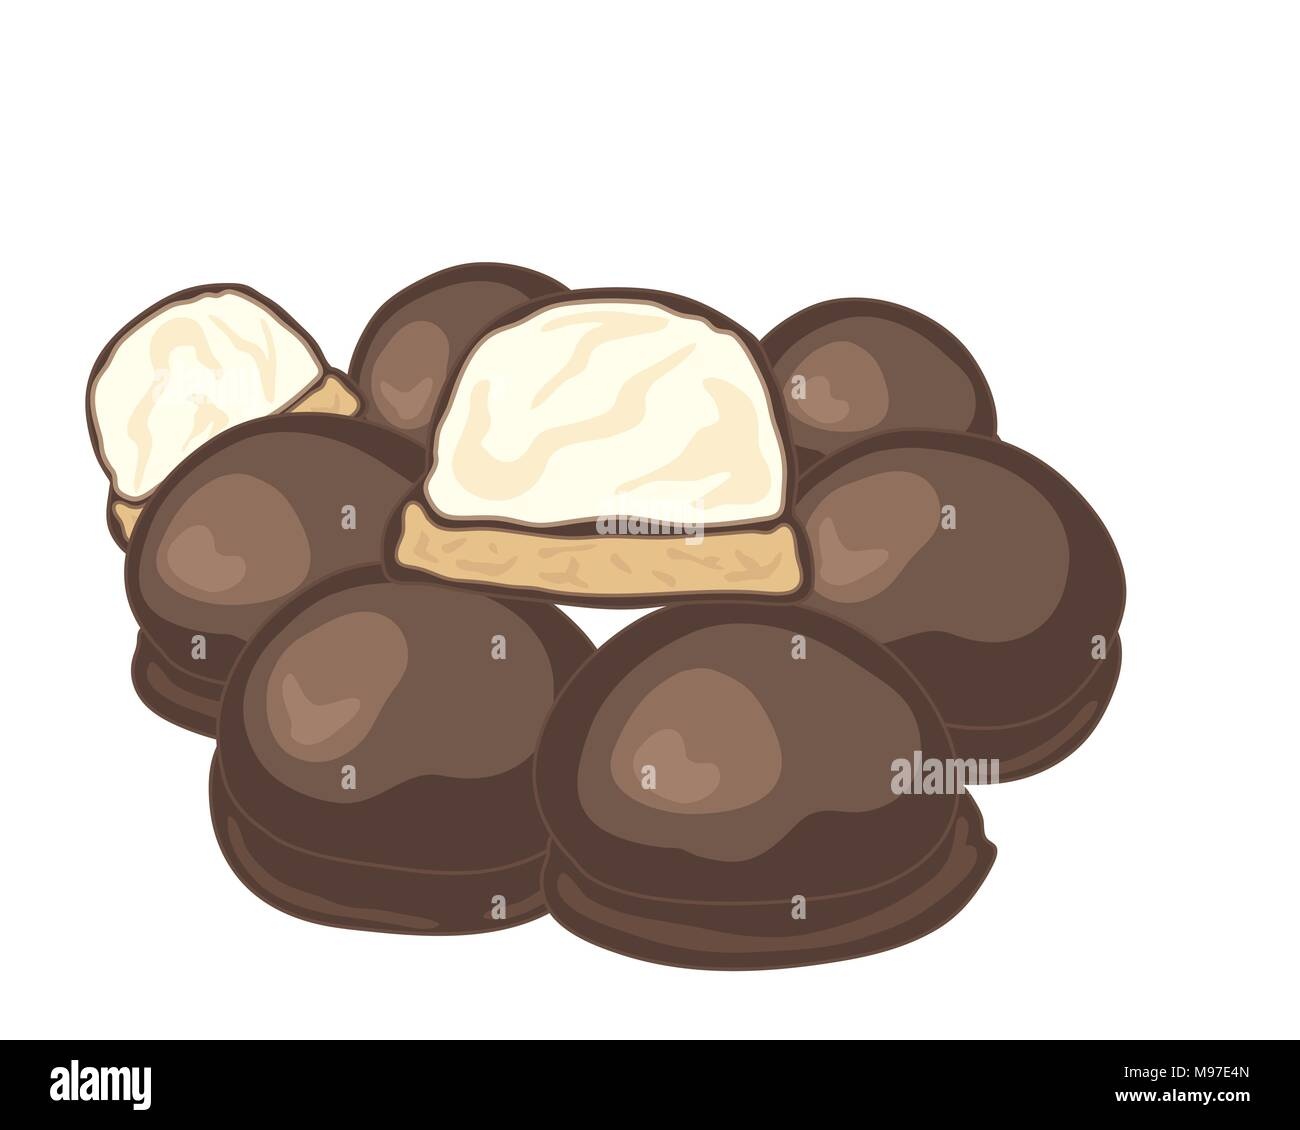 a vector illustration in eps format of a stack of chocolate covered marshmallow biscuits with one halved on a white background - Stock Vector